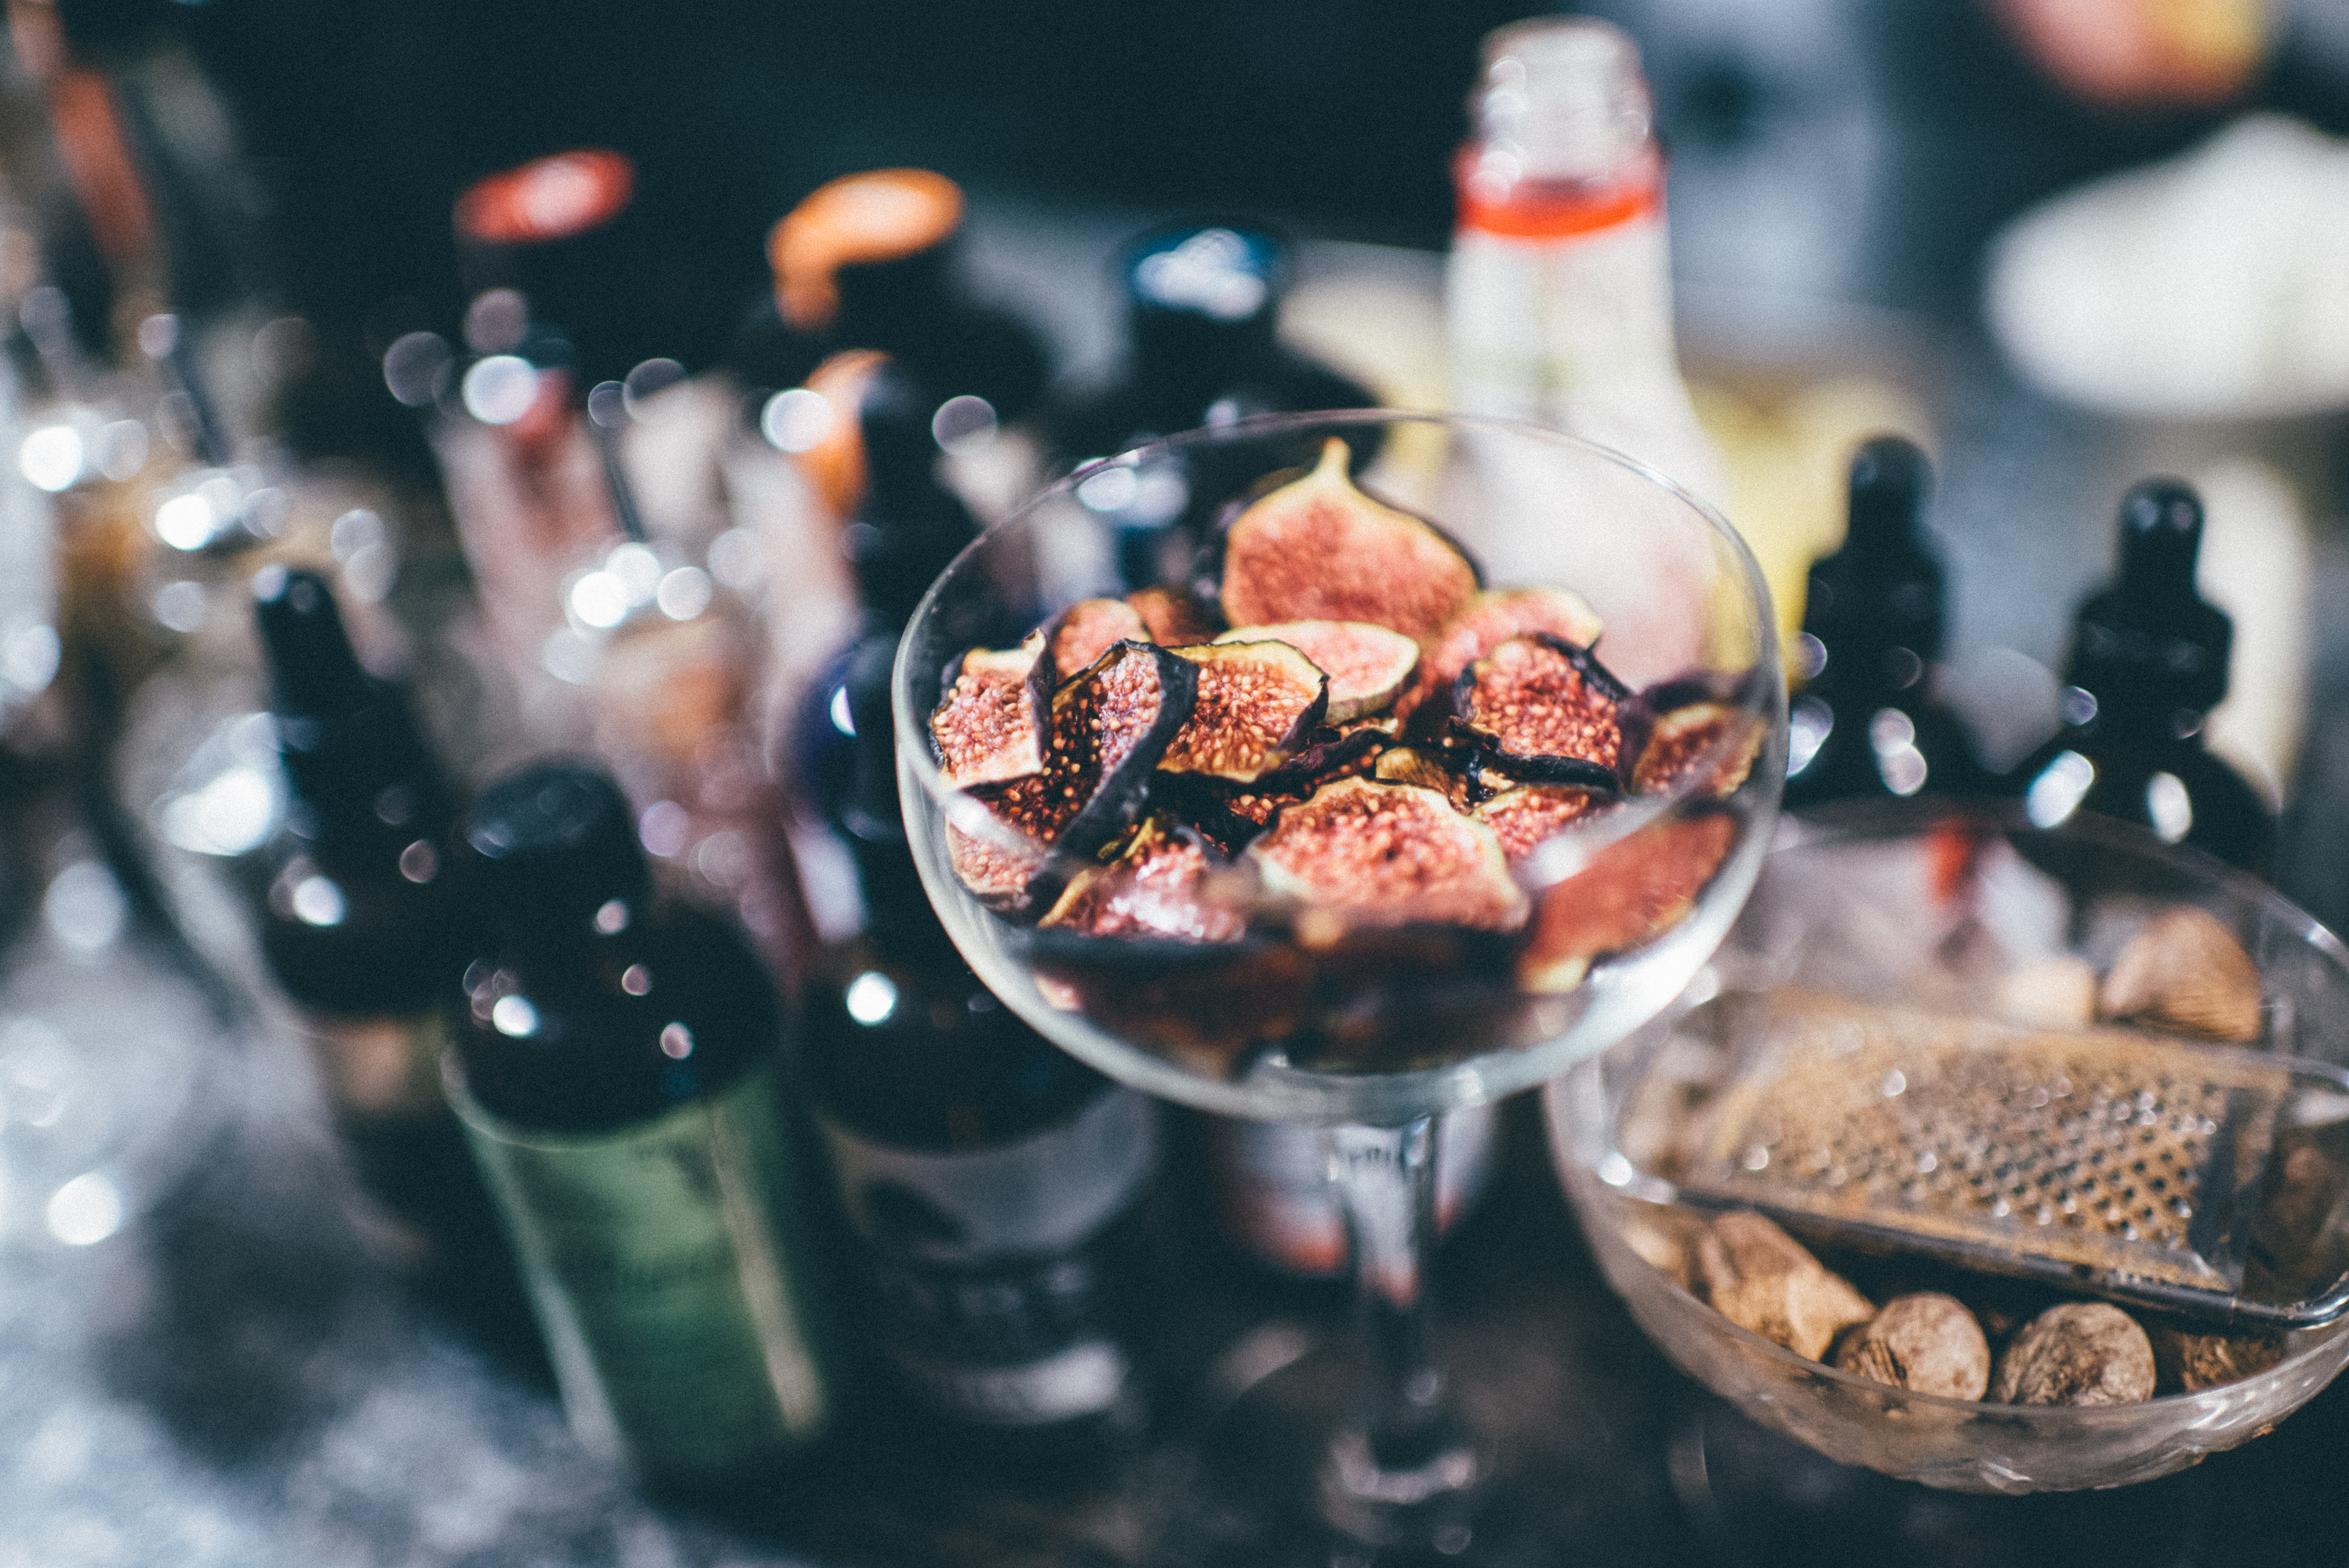 HiP Paris blog. The 3 most outrageous cocktails in Paris. Fig garnishes at Bespoke. Photo by Jean-Marie Heidinger.